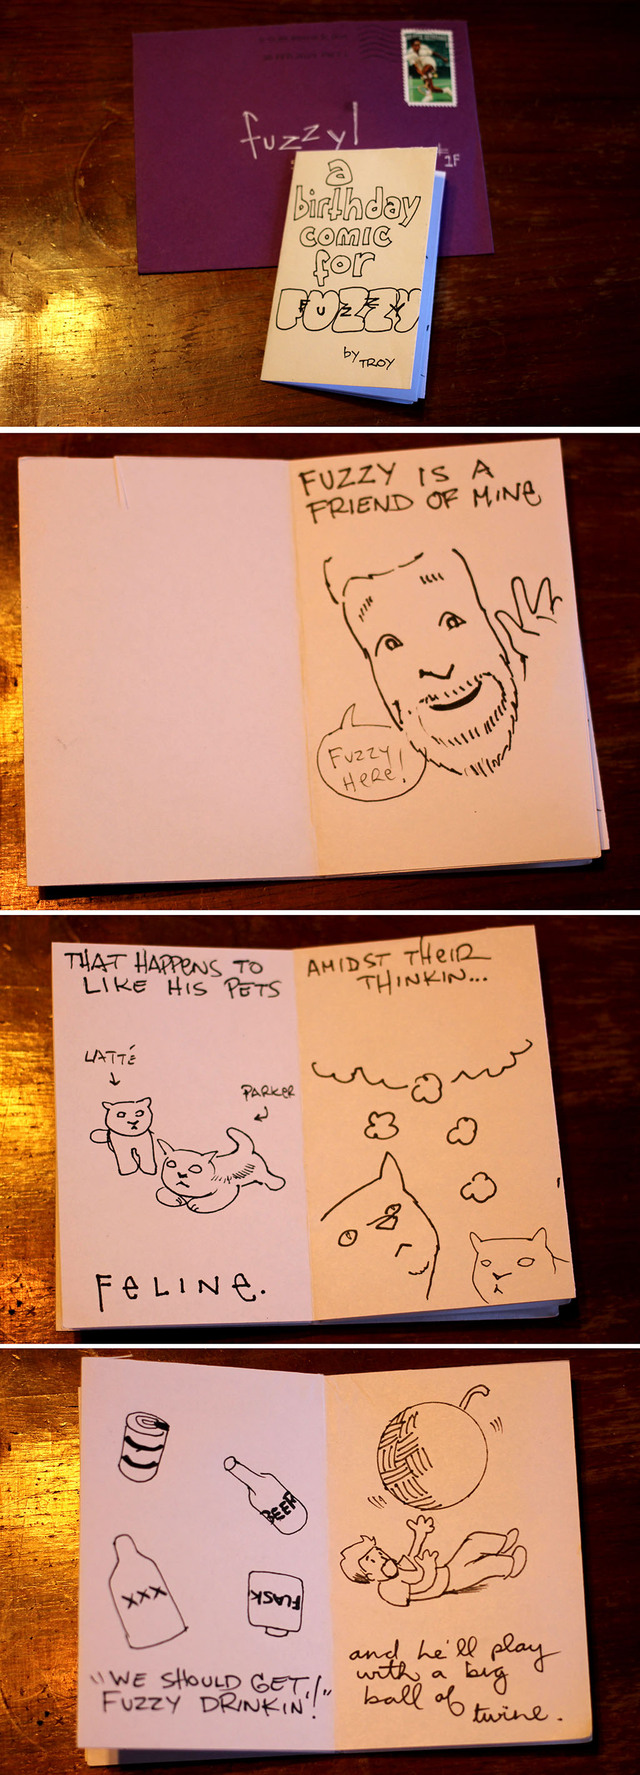 Birthday Comic from Troy